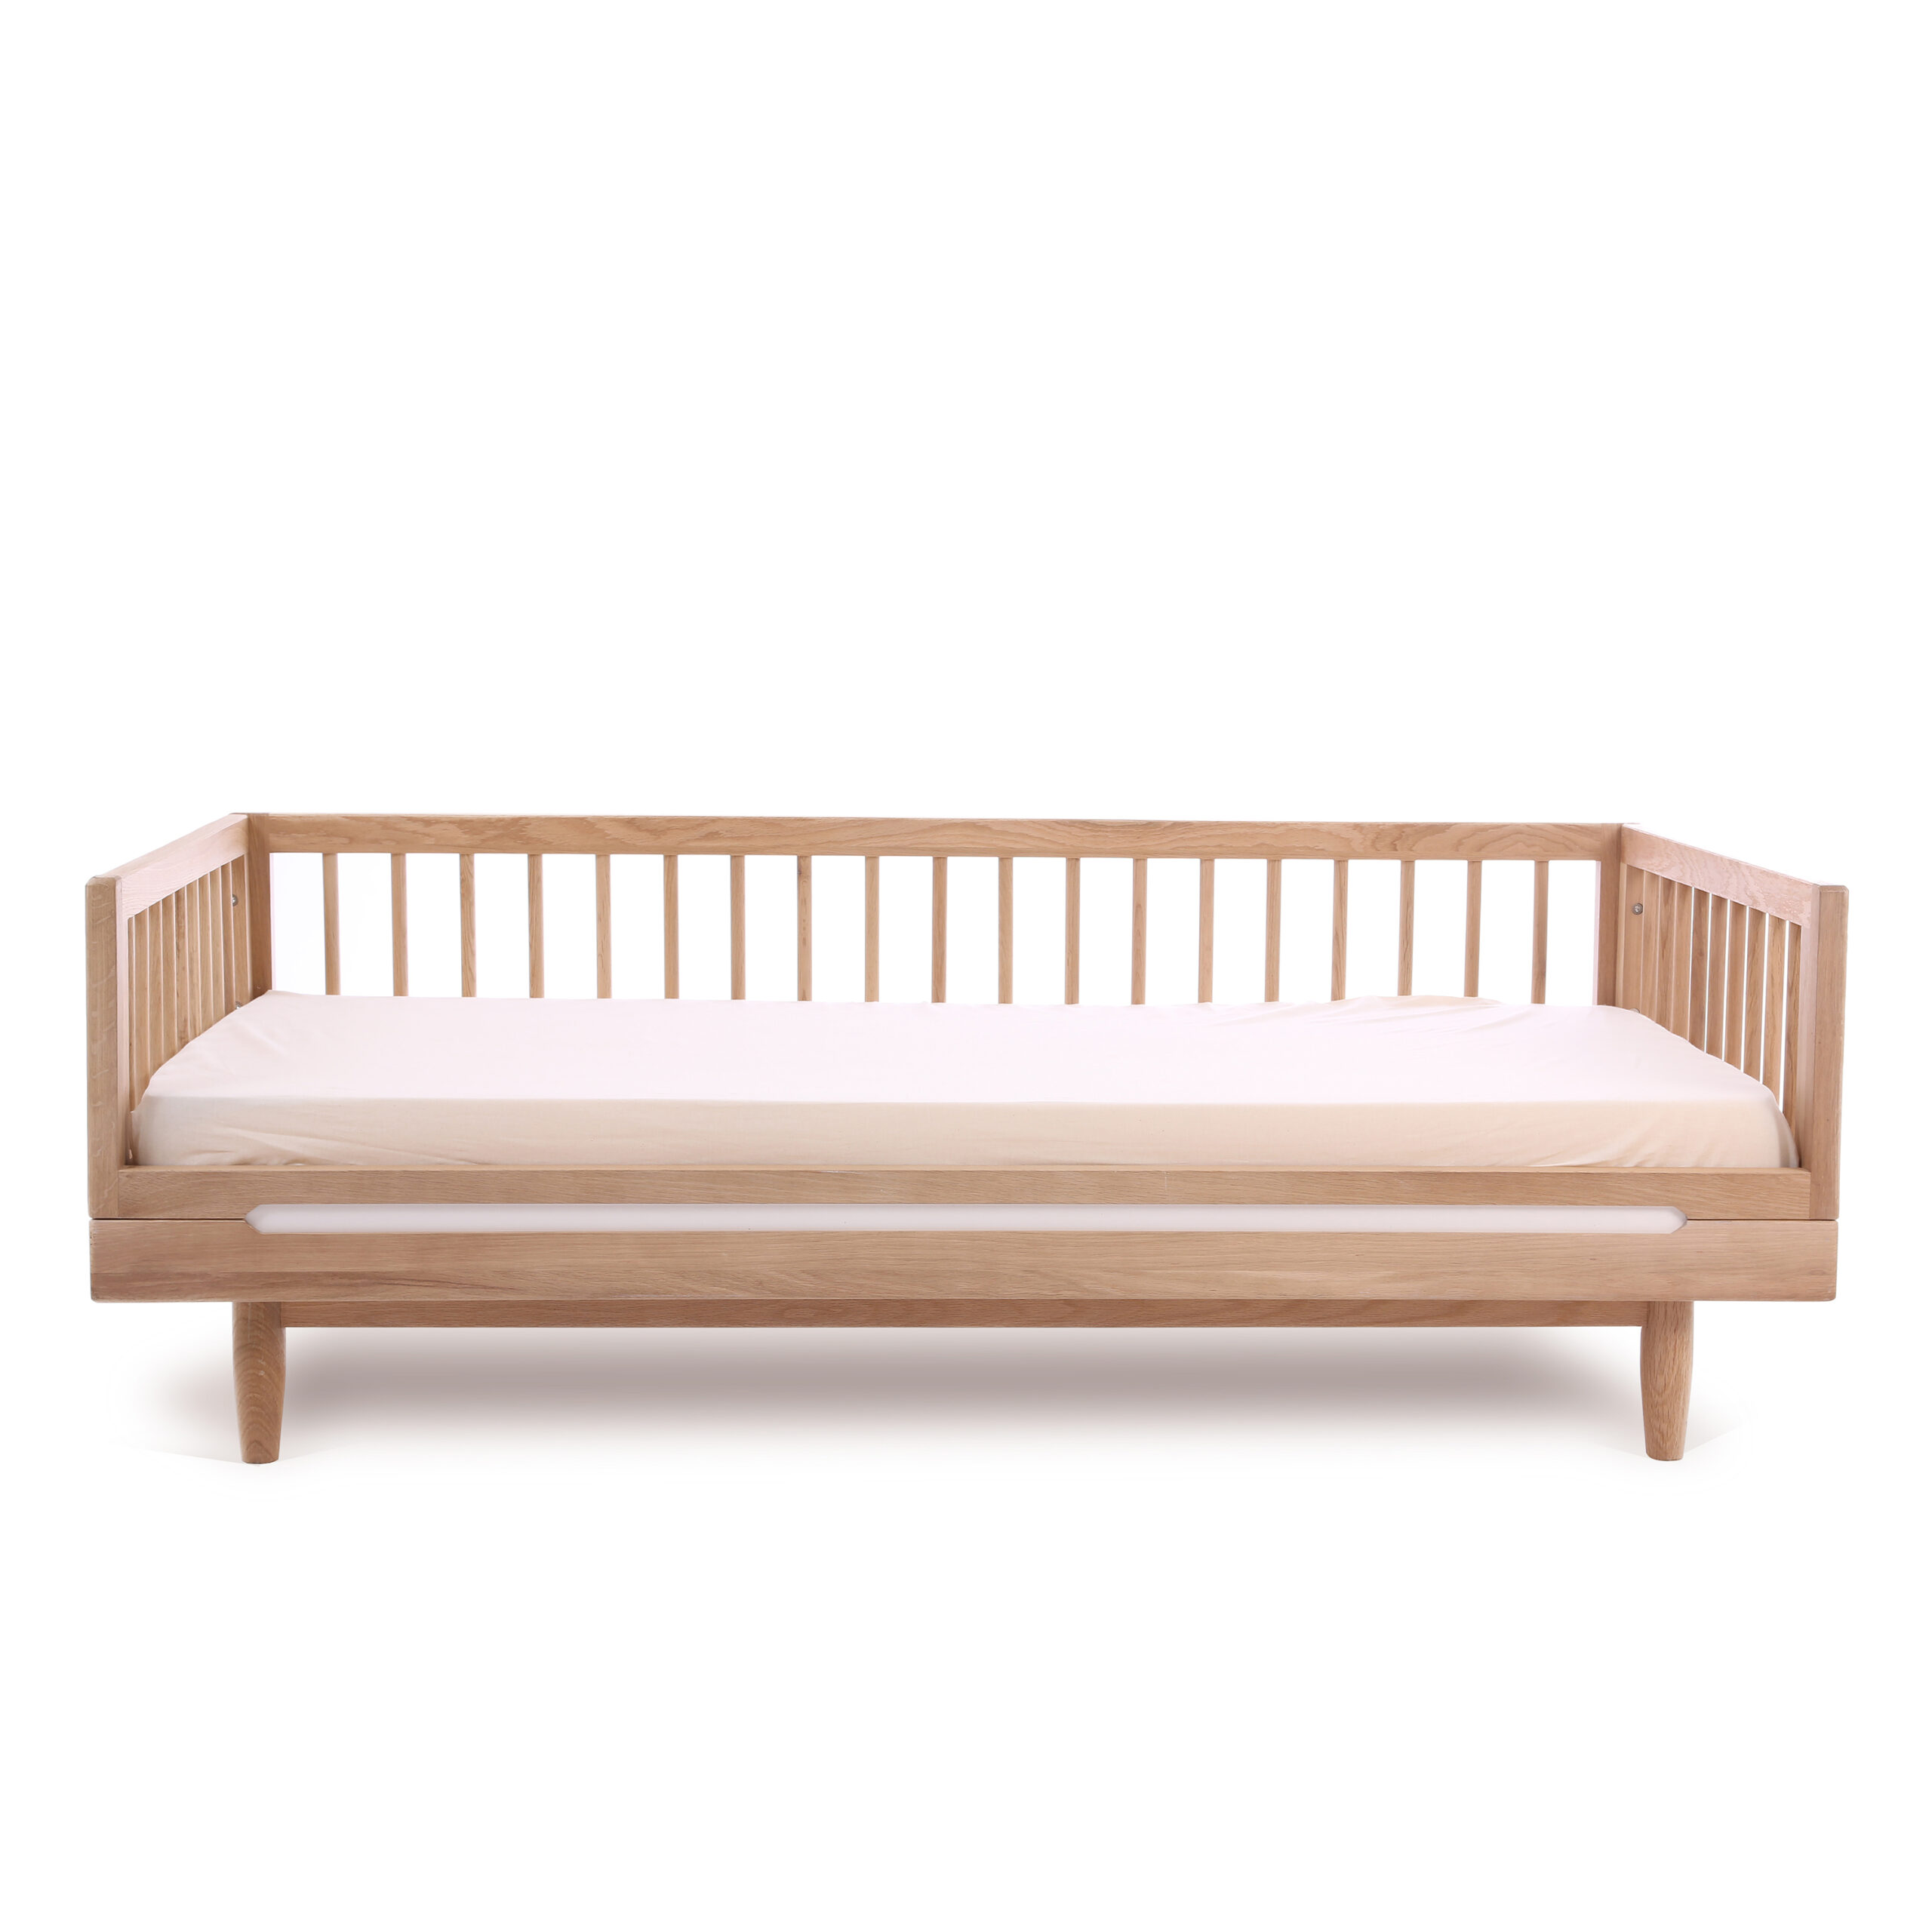 Product image Junior bed